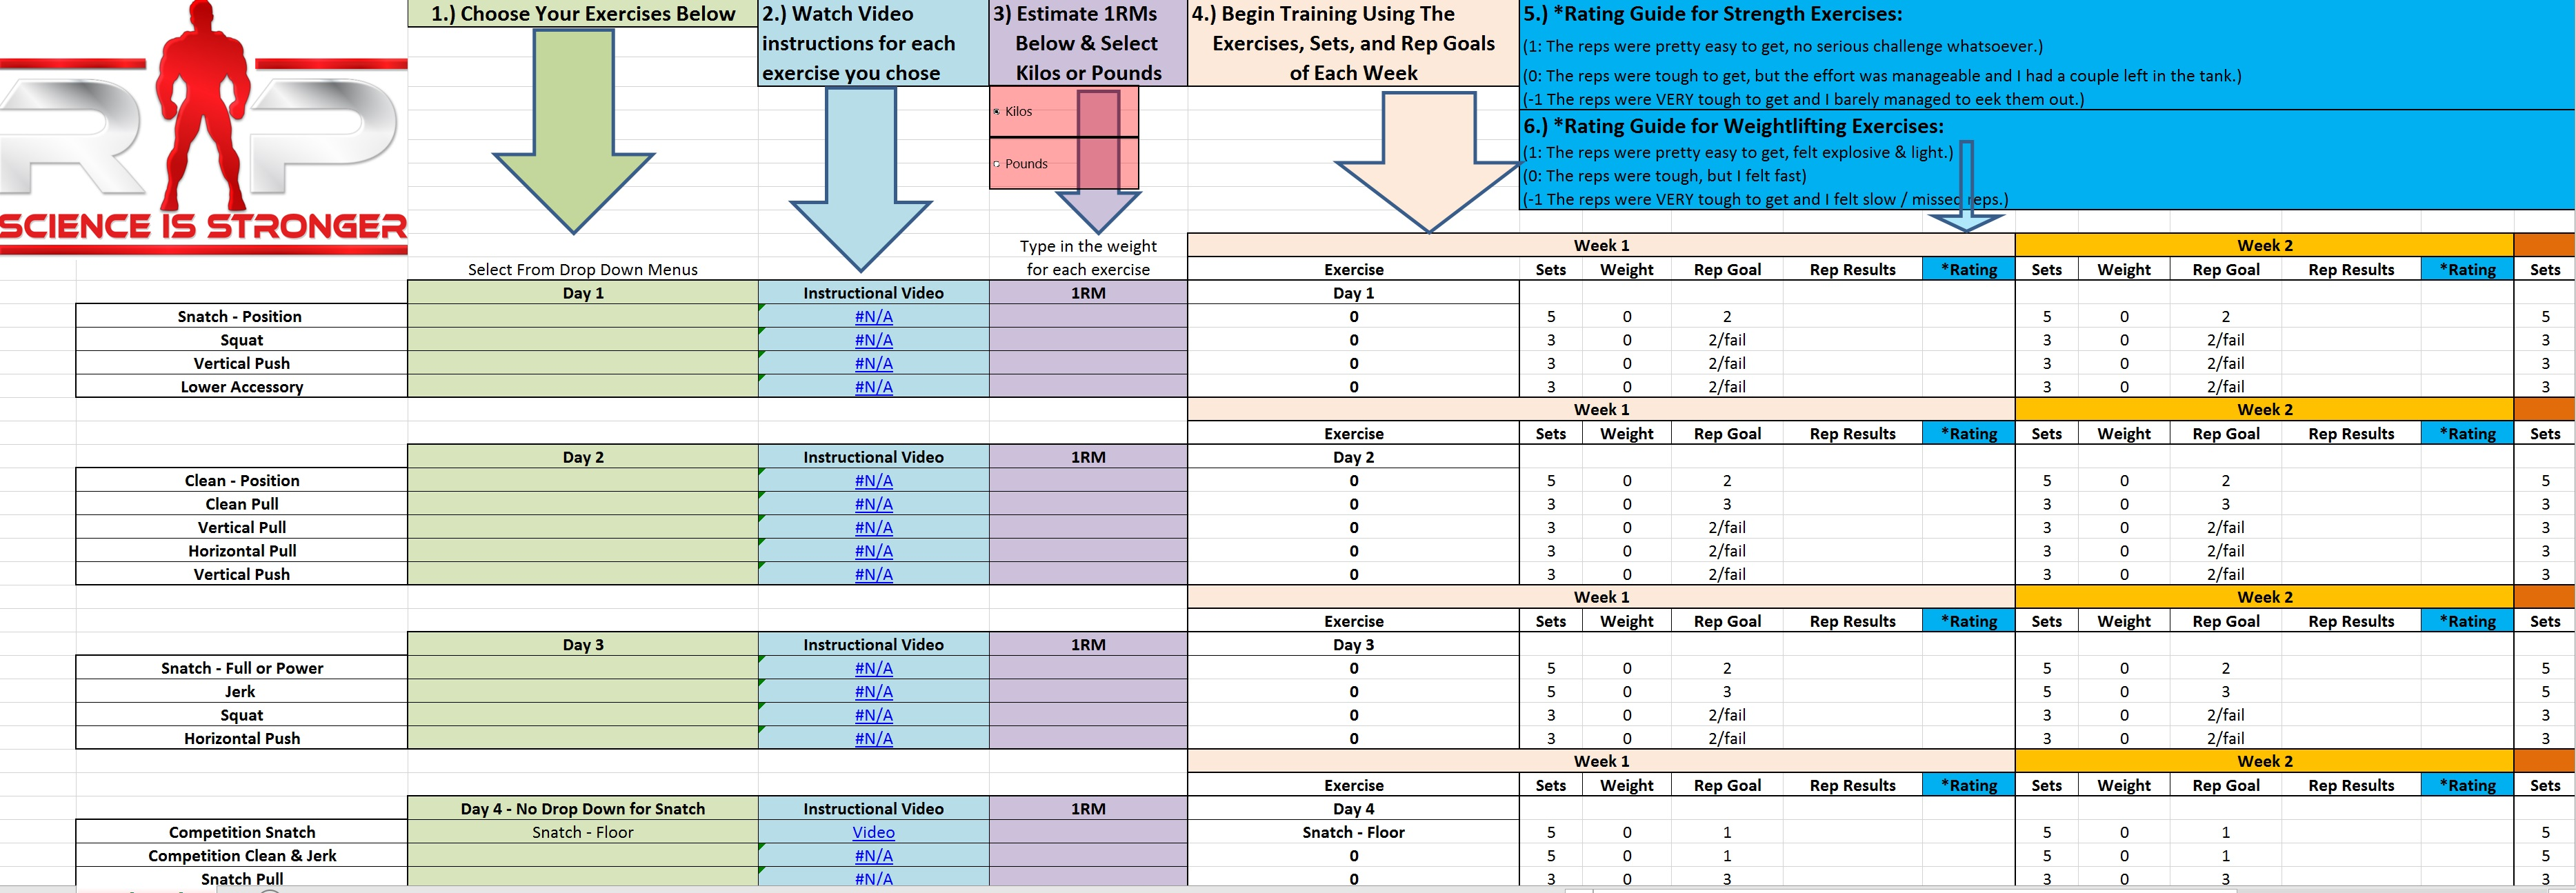 Example Of Renaissance Periodization Template Excel In Renaissance Periodization Template Excel Templates